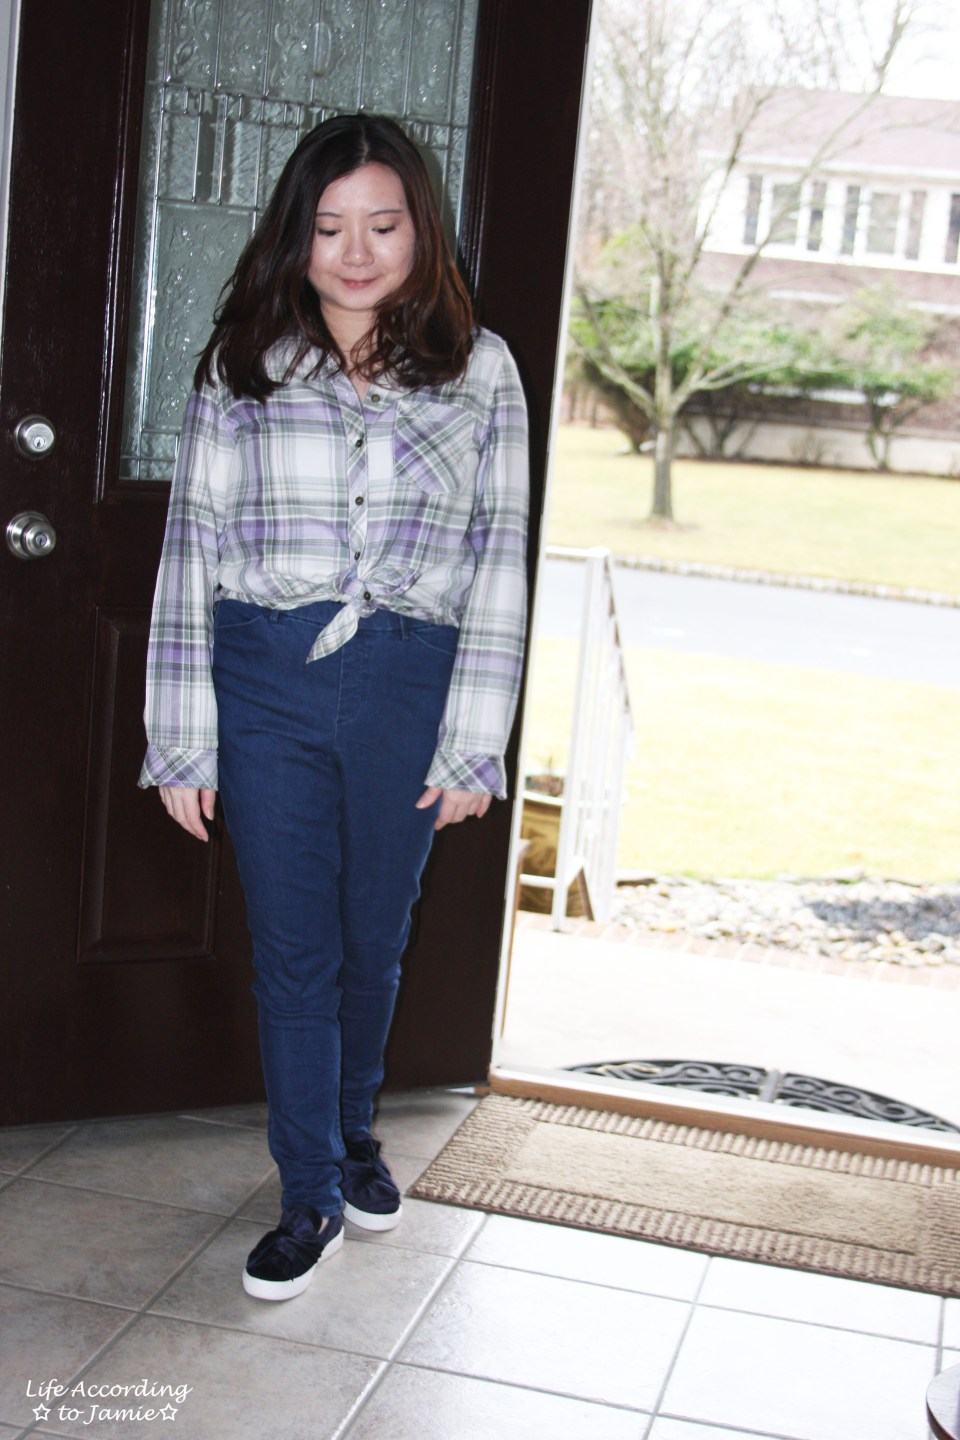 Tied Plaid Top + High Waisted Jeans 7